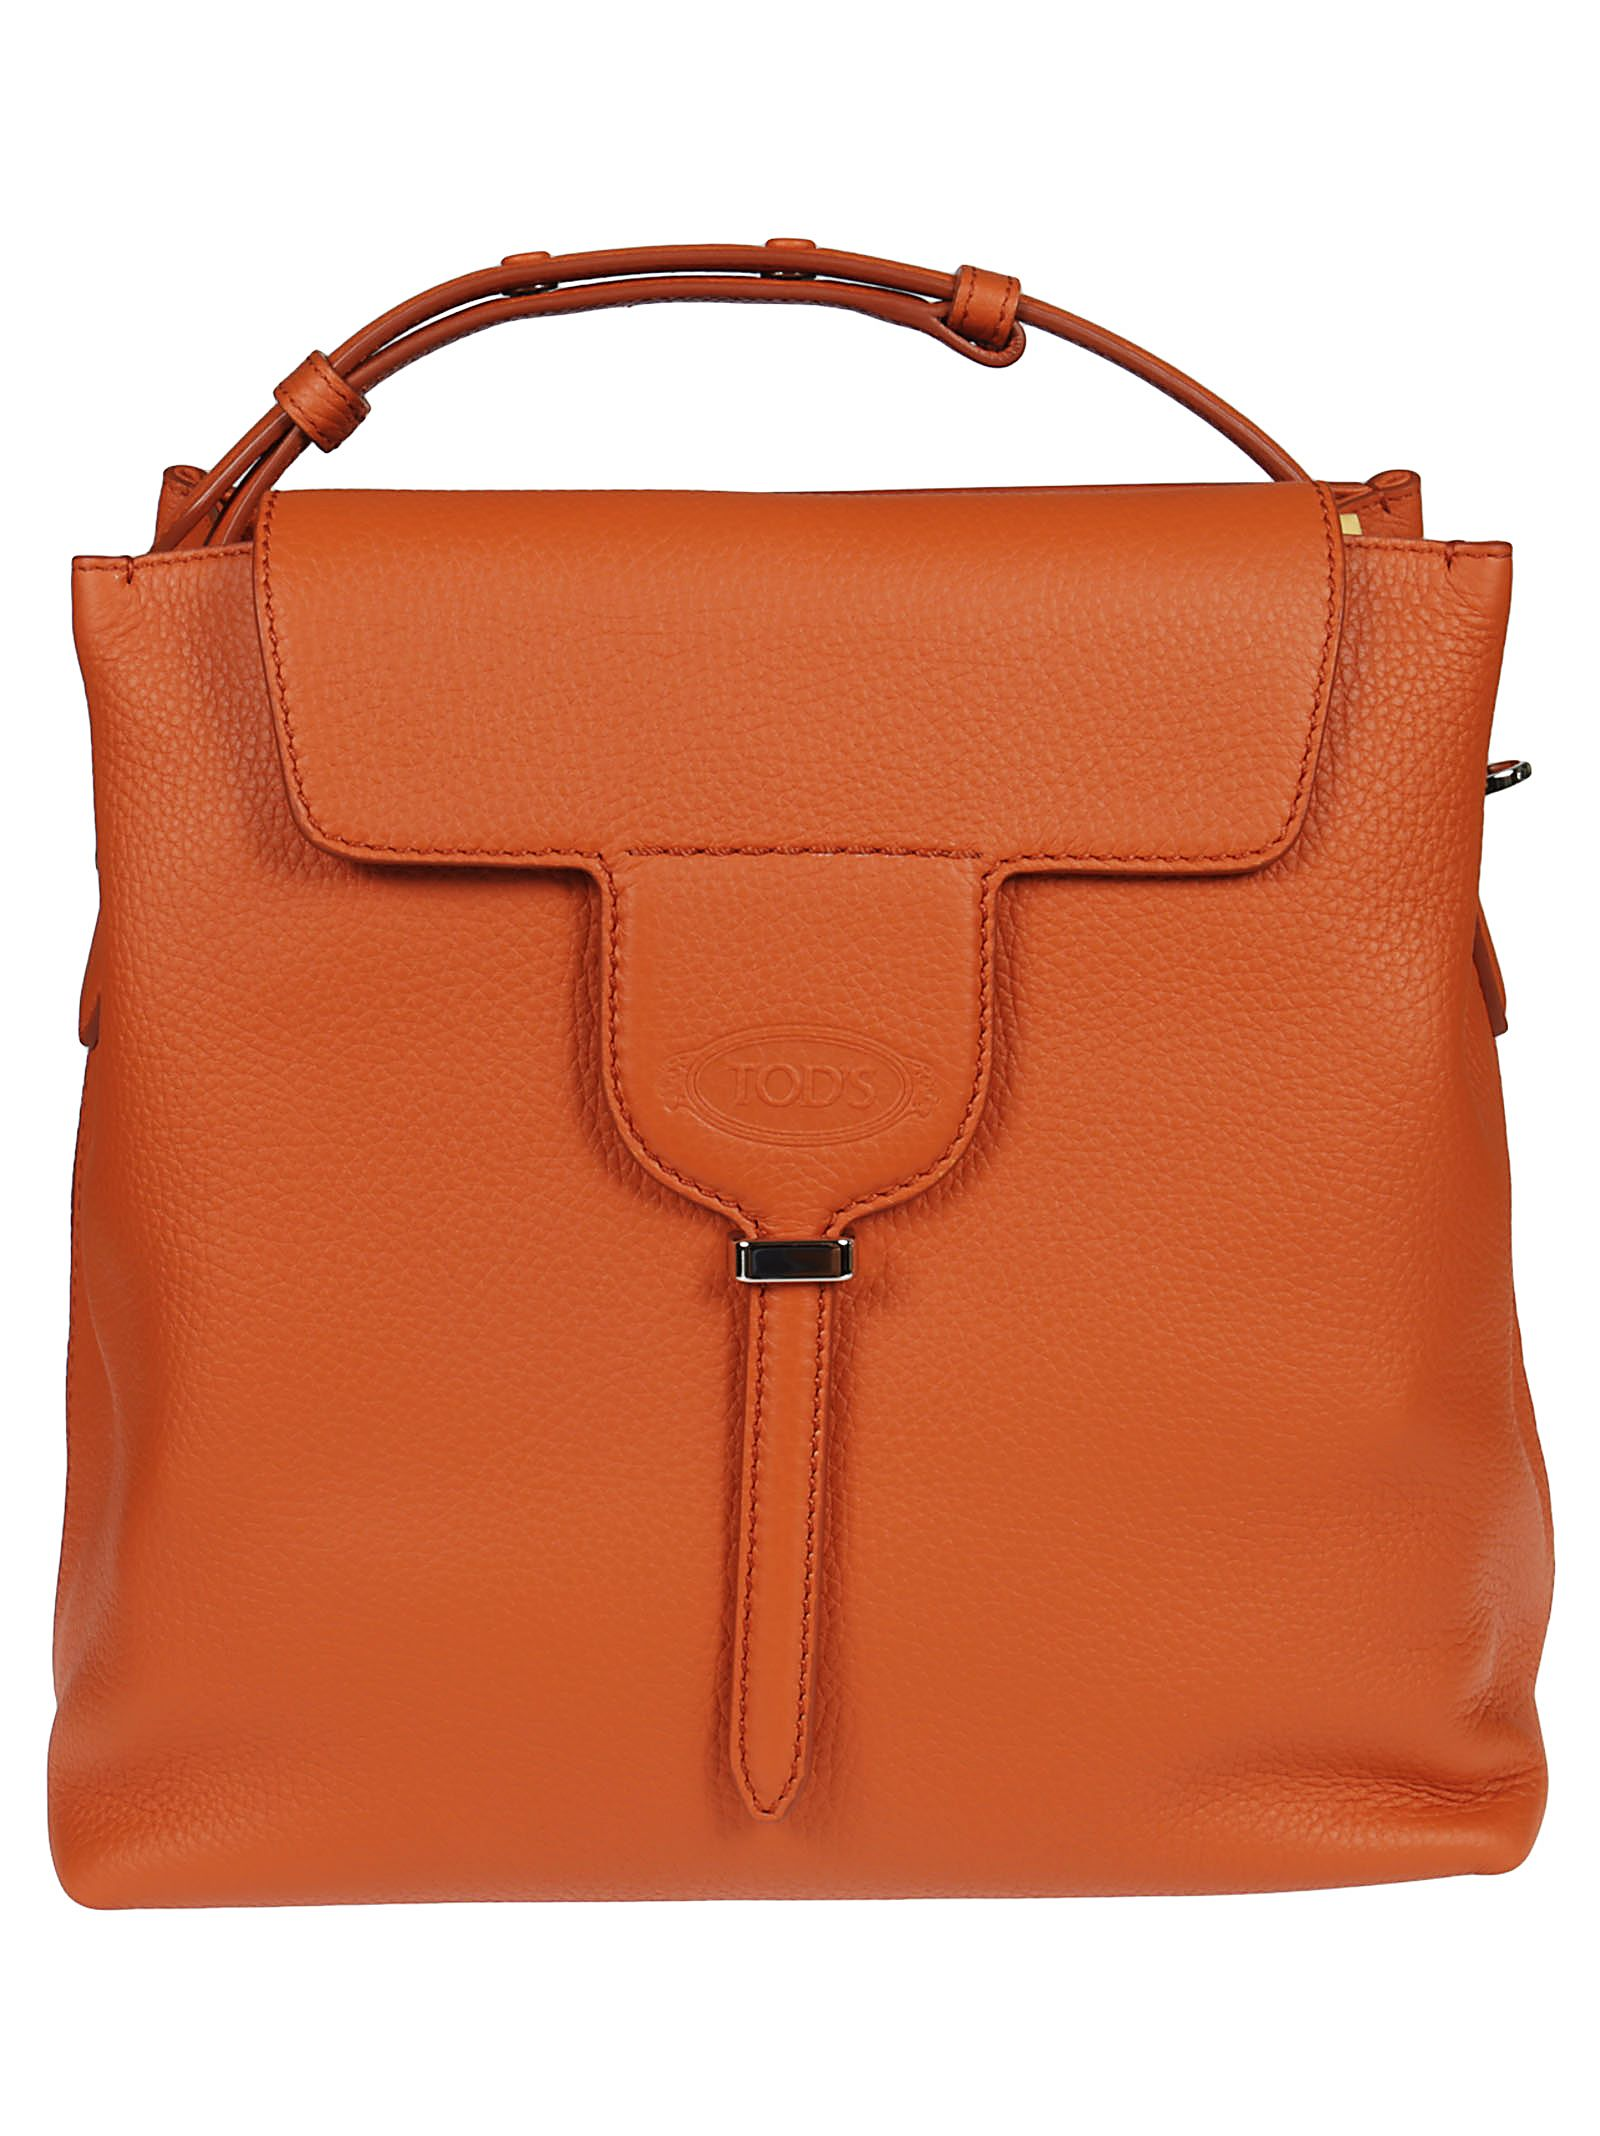 SQUARE FLAP TOTE